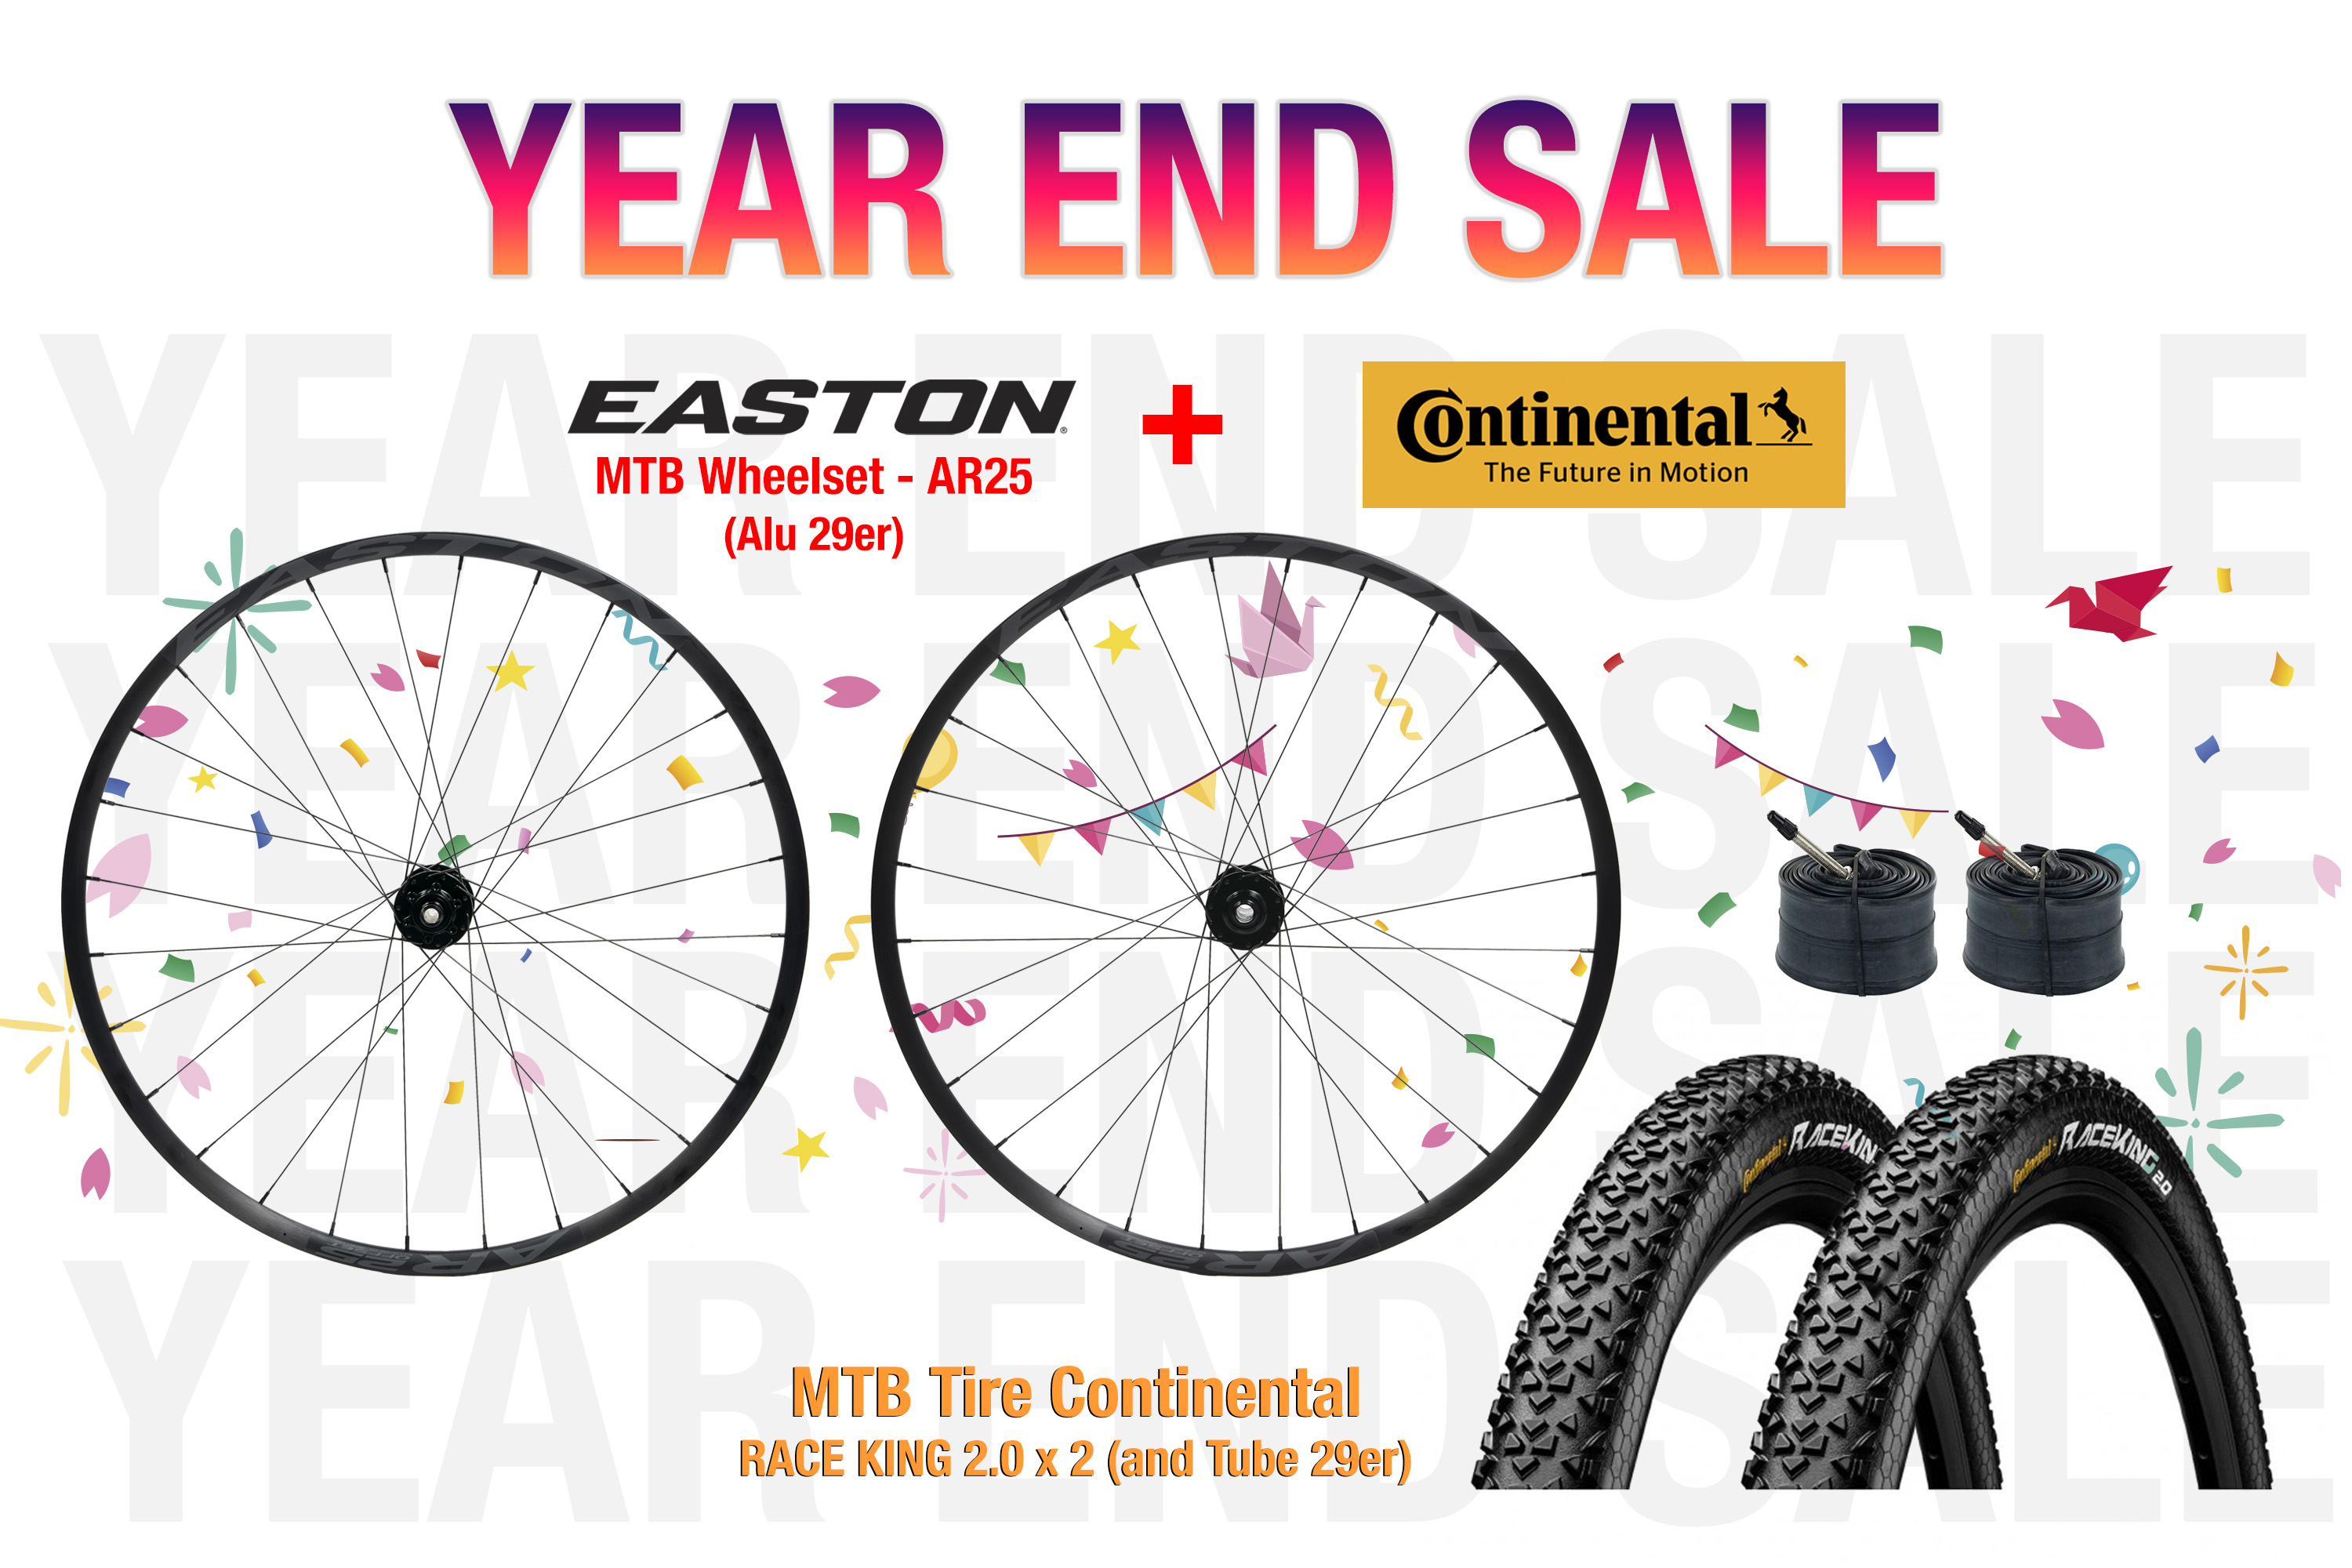 EASTON AR25 (MTB Wheelset Alu 29er) + Continental RACE KING 2.0